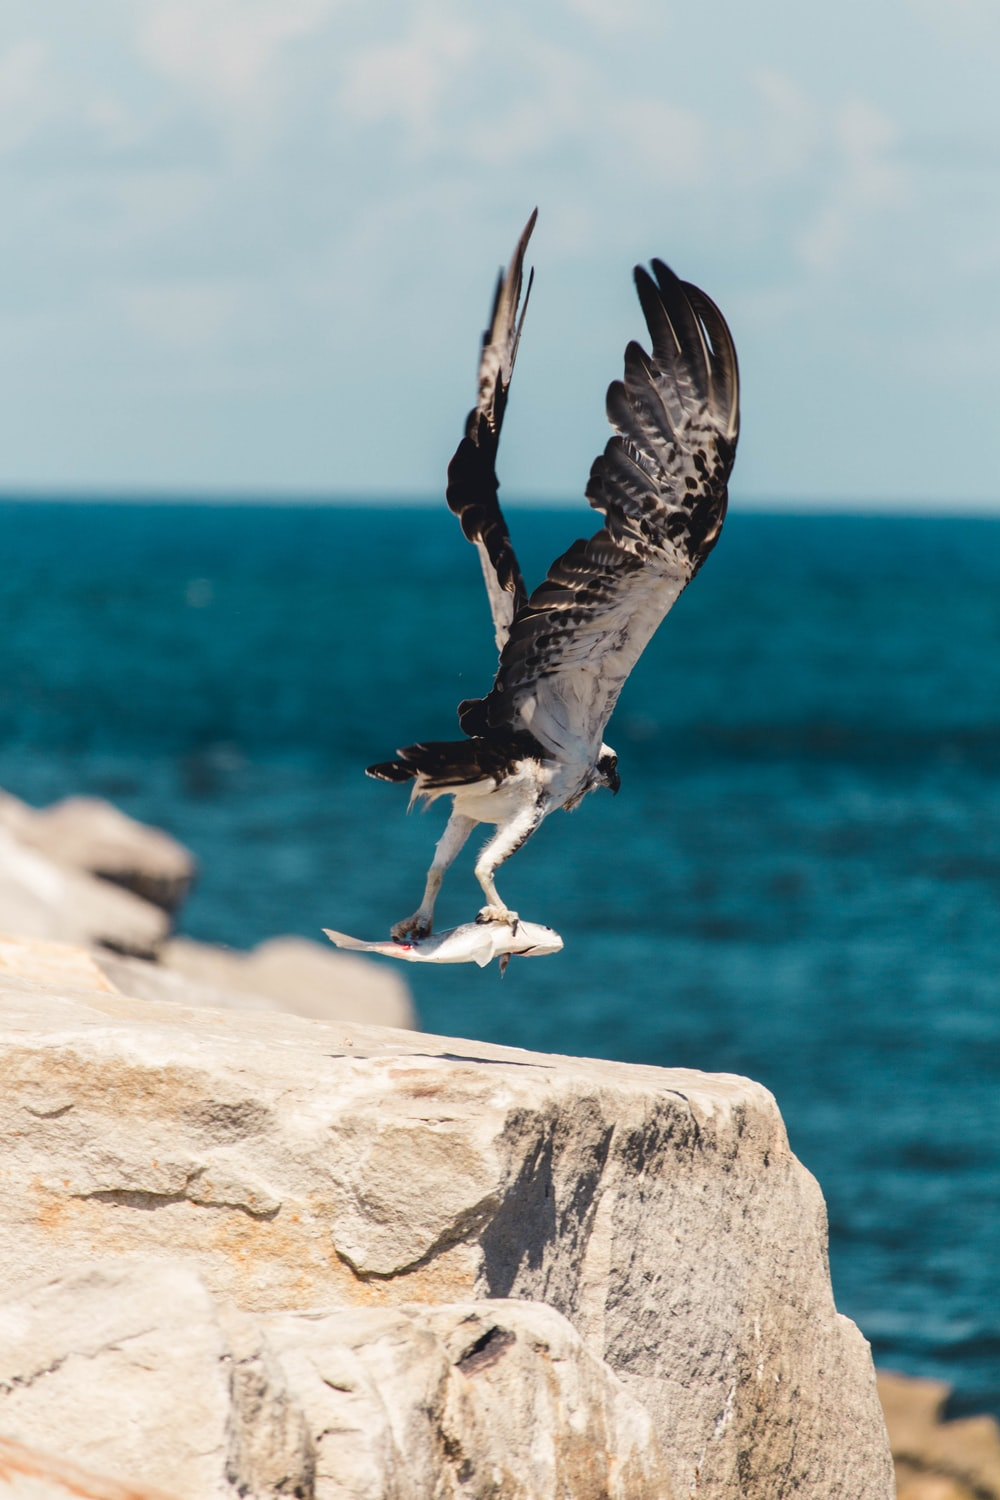 selective focus photography of fish on bird's claw